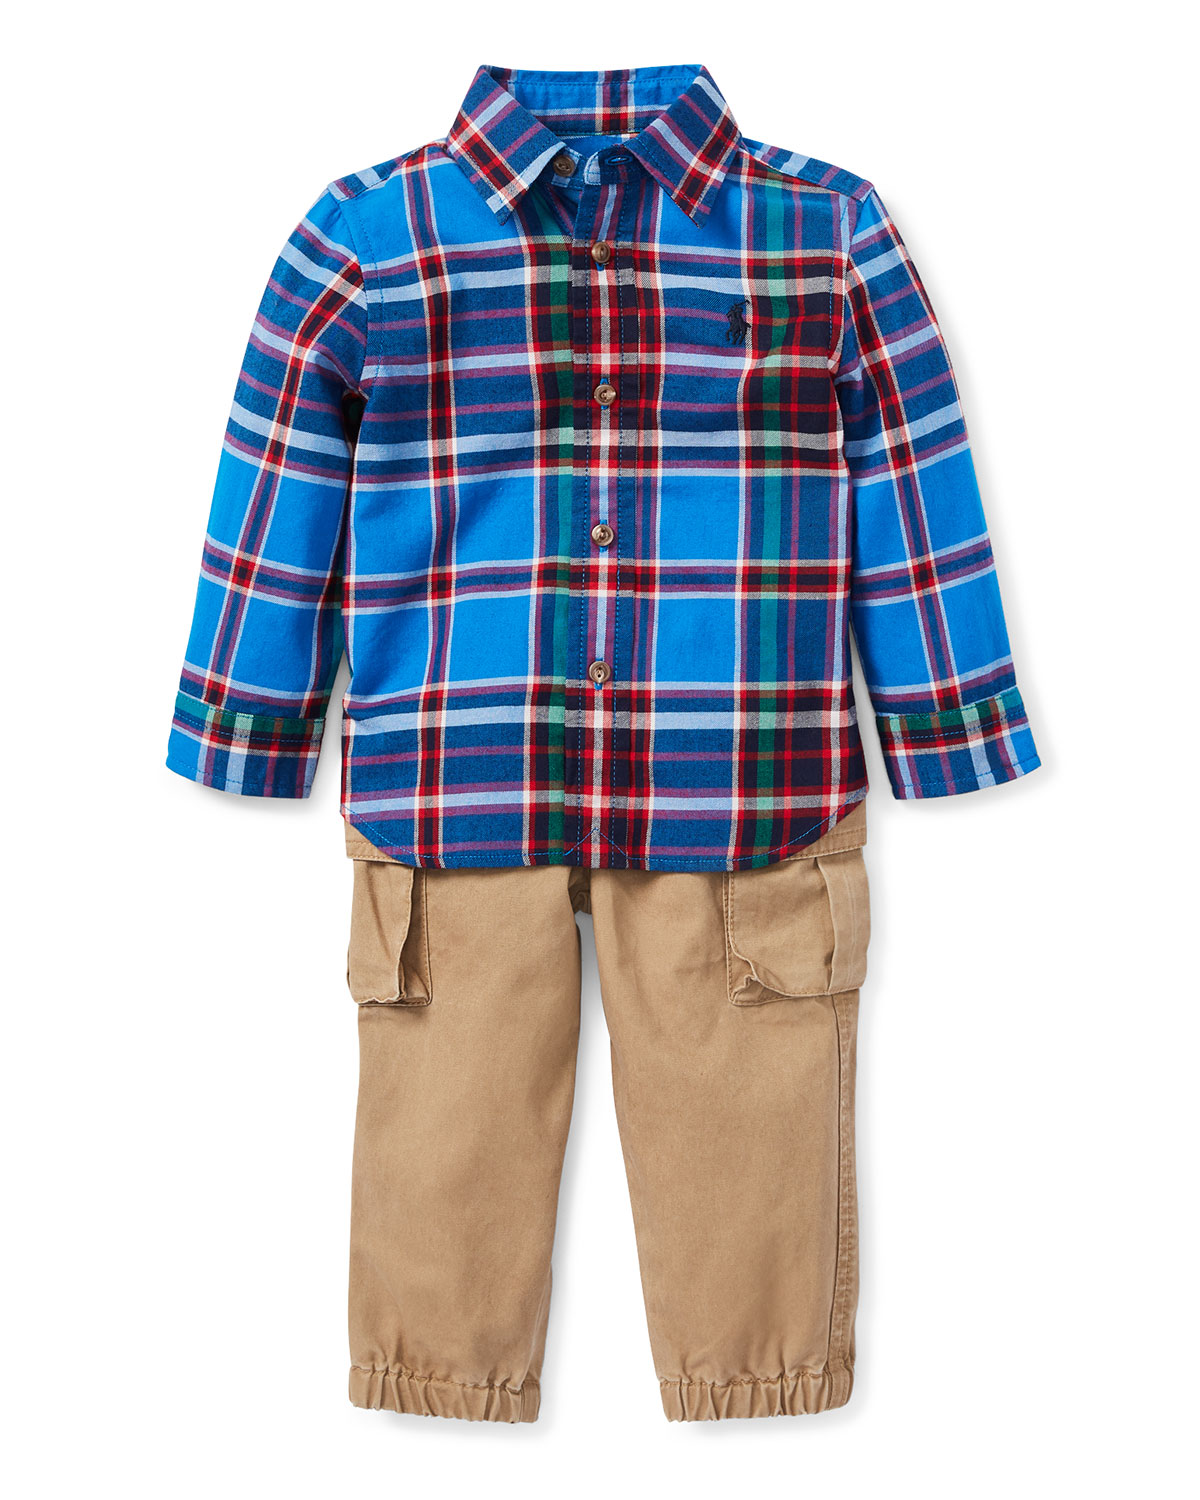 Collar Plaid Shirt w/ Twill Pants, Size 6-24 Months